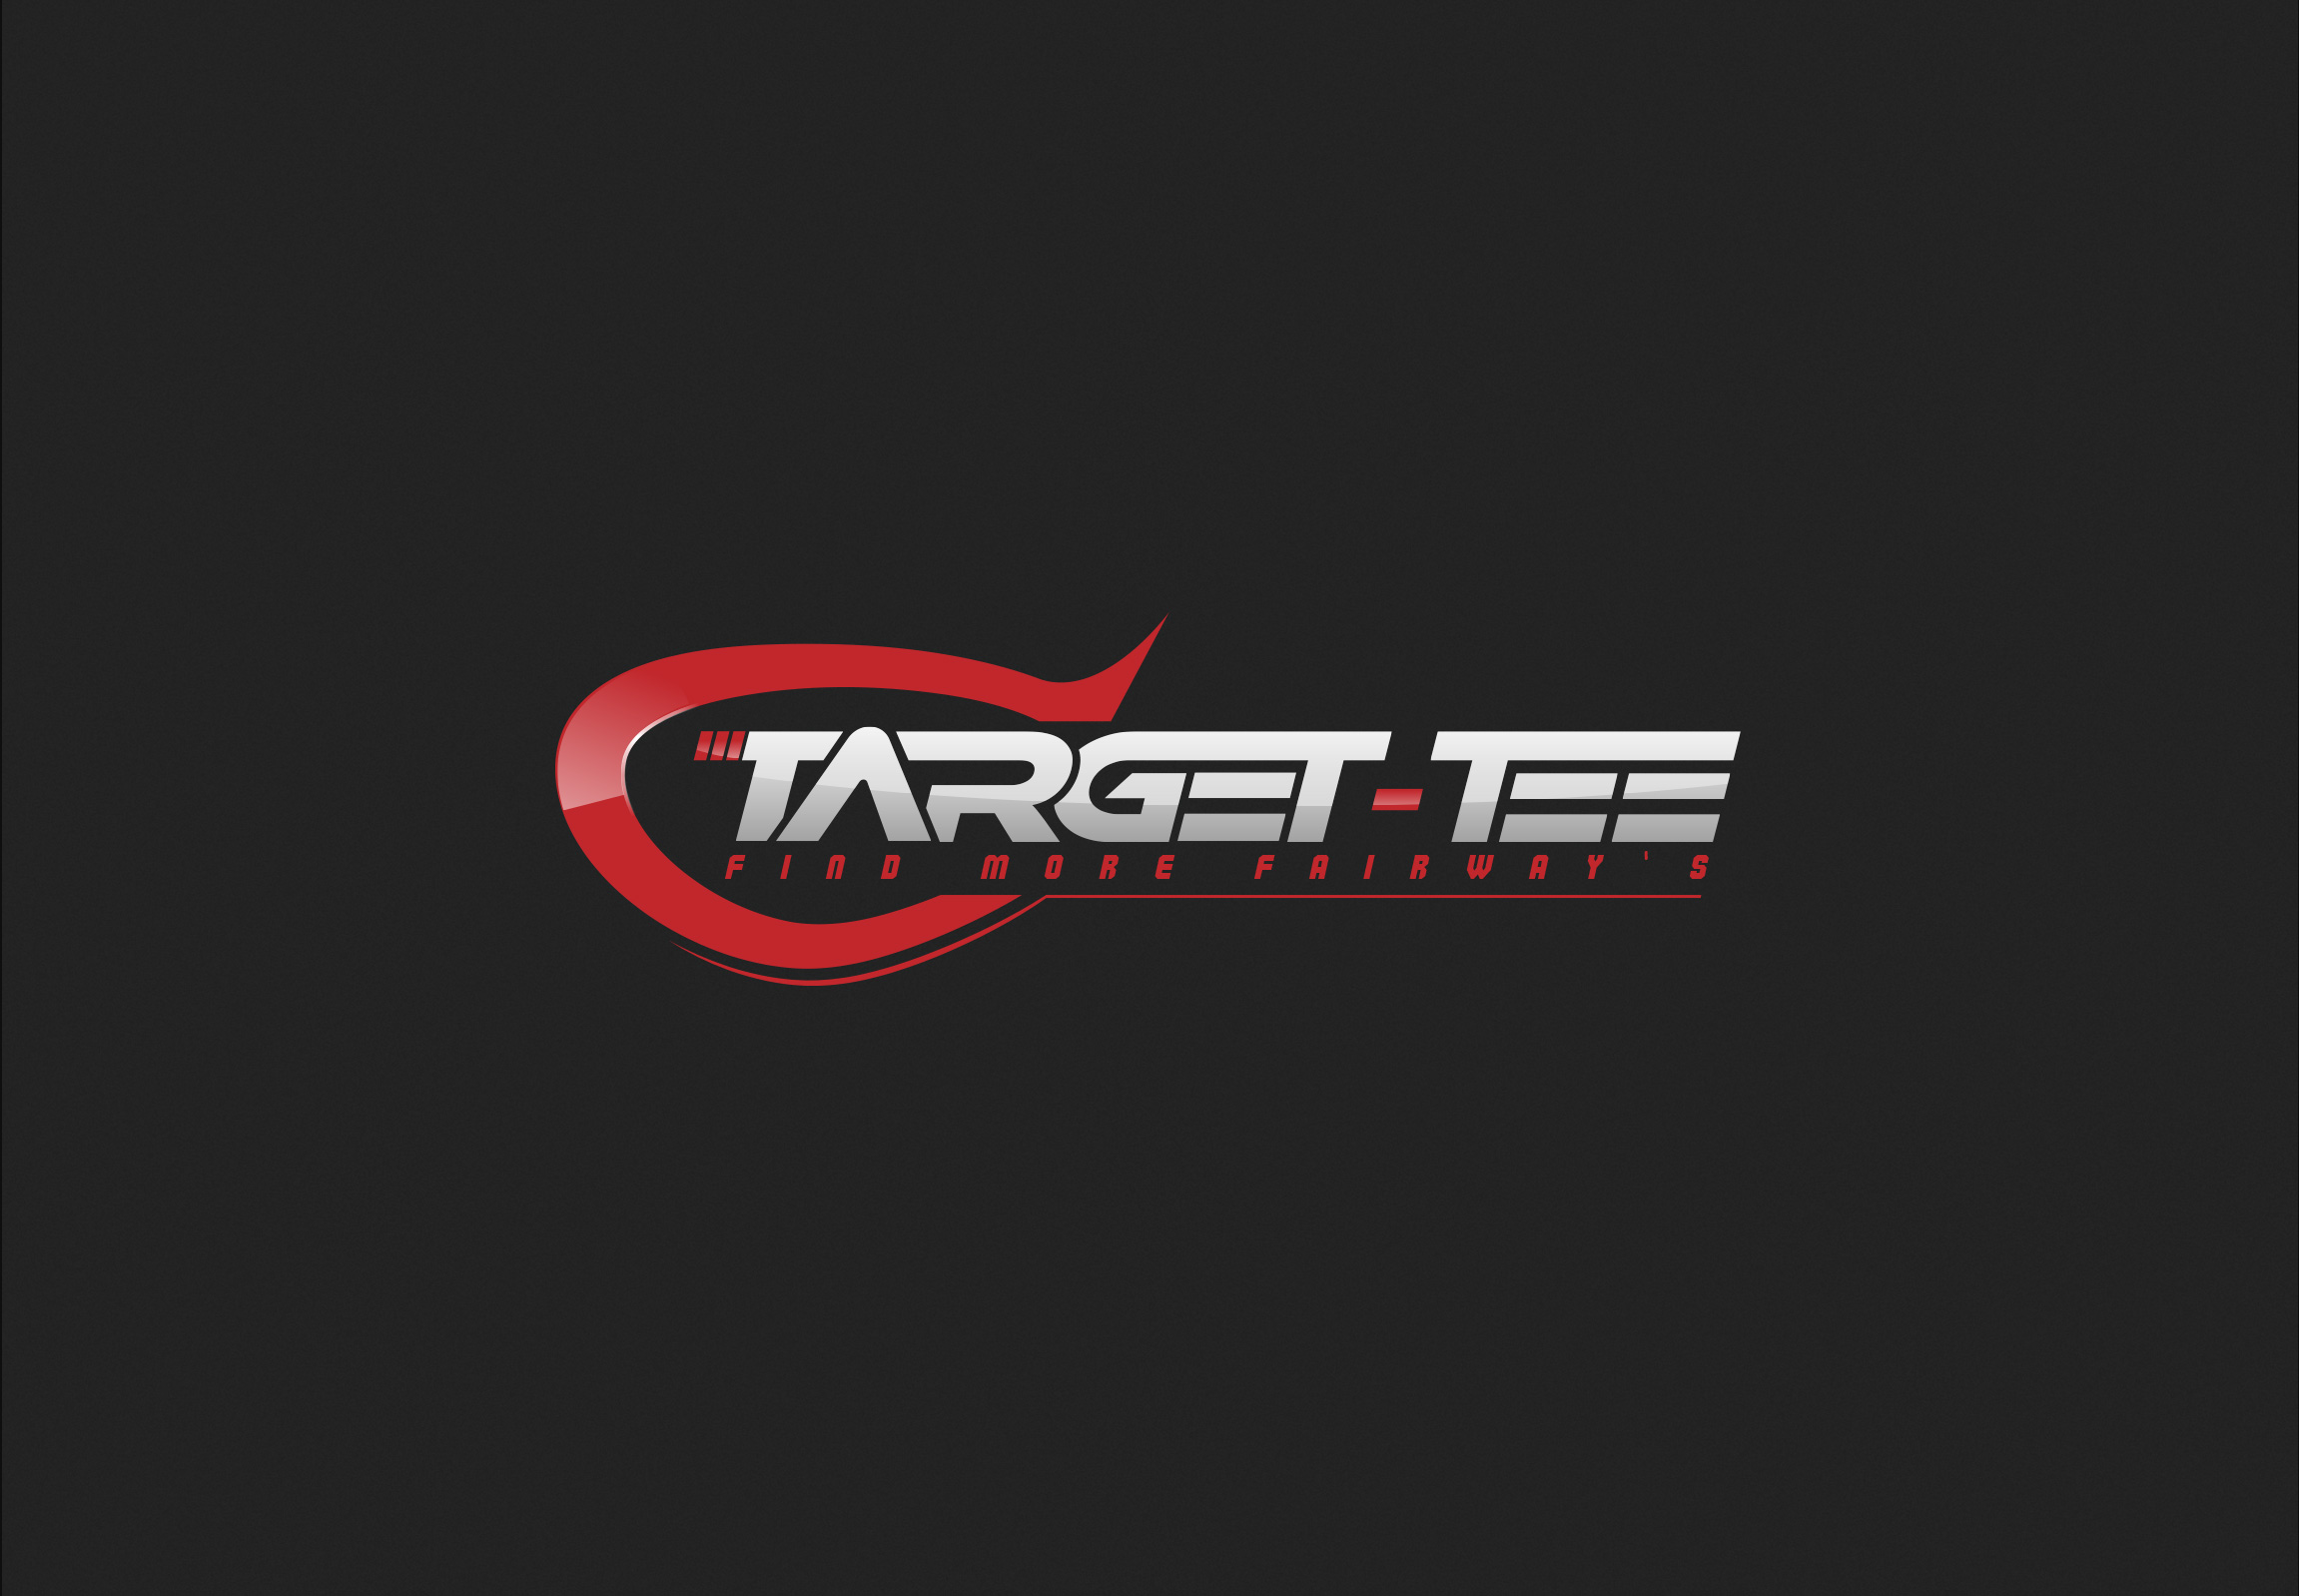 Logo Design by olii - Entry No. 132 in the Logo Design Contest Imaginative Logo Design for TARGET-TEE.